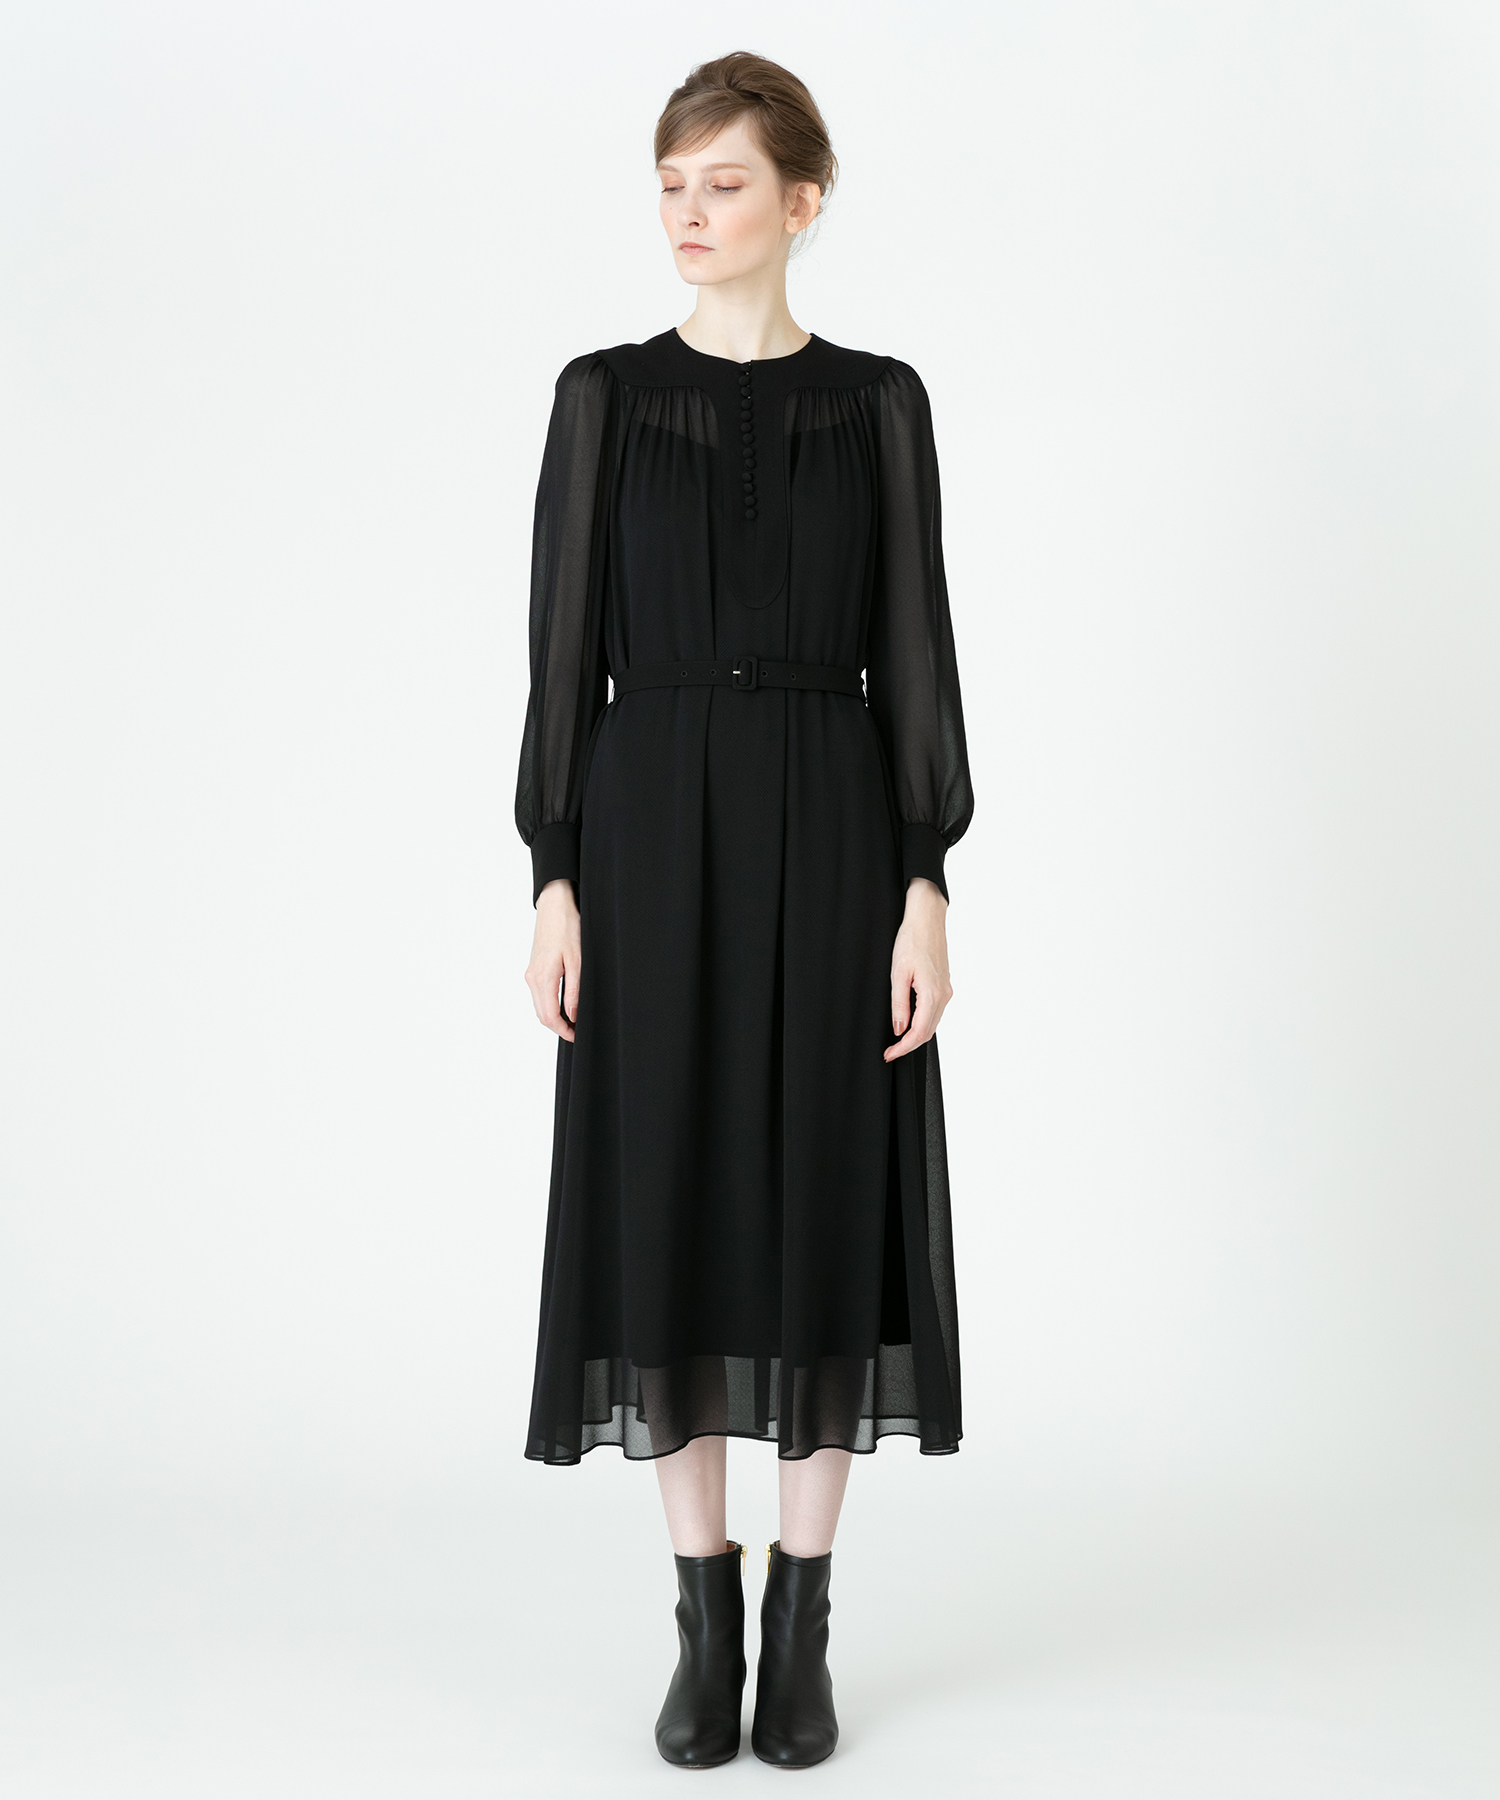 【LOULOU WILLOUGHBY】シルックジョーゼットワンピース